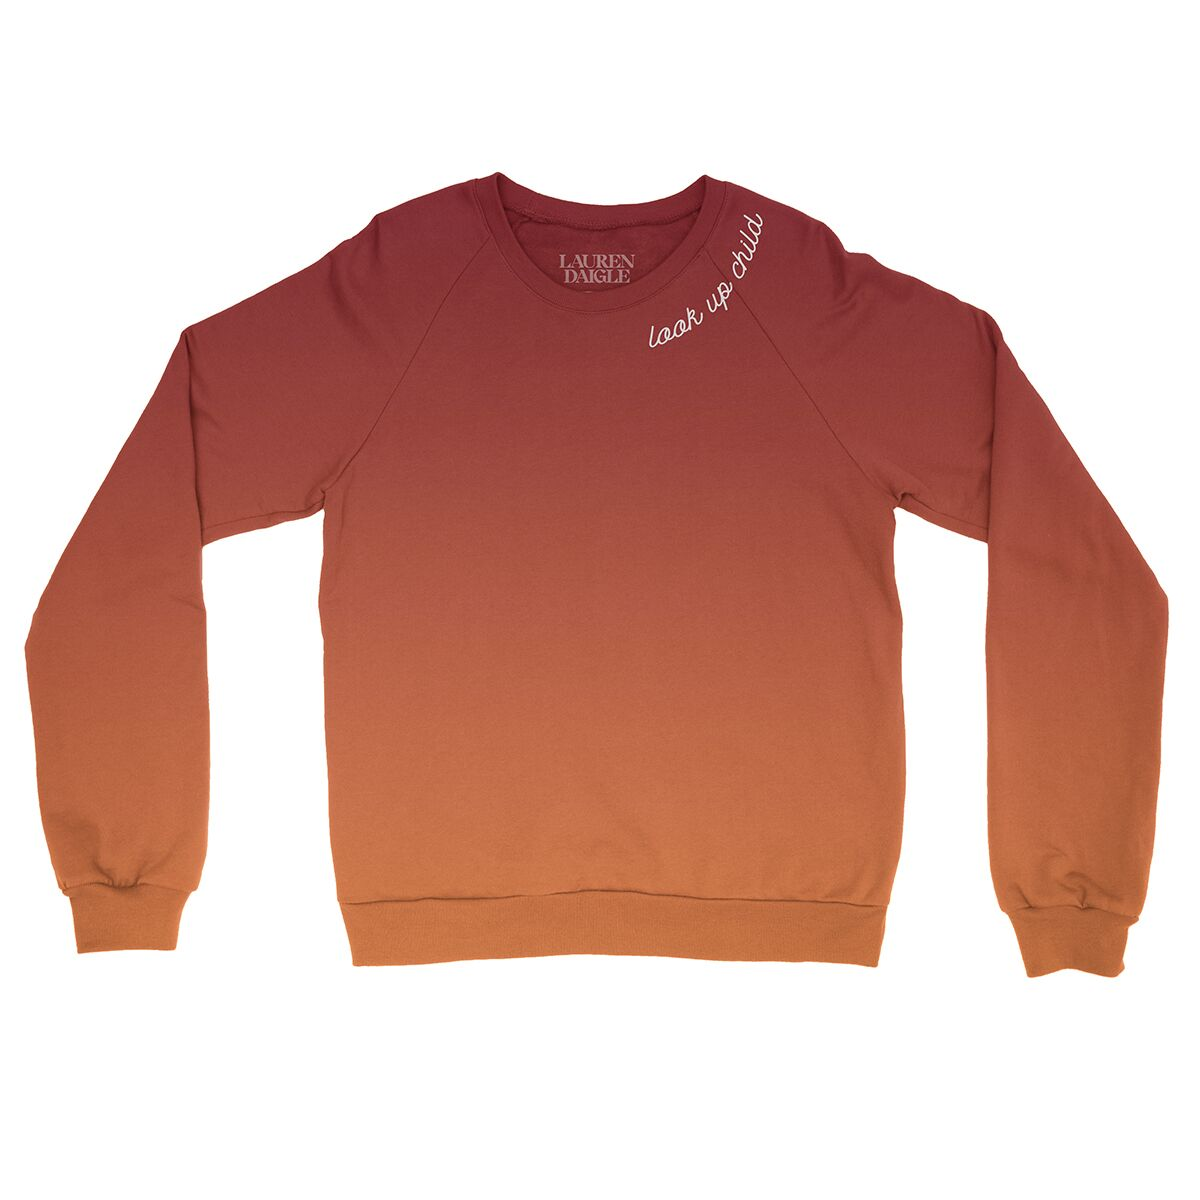 Look Up Child Ombre Crewneck